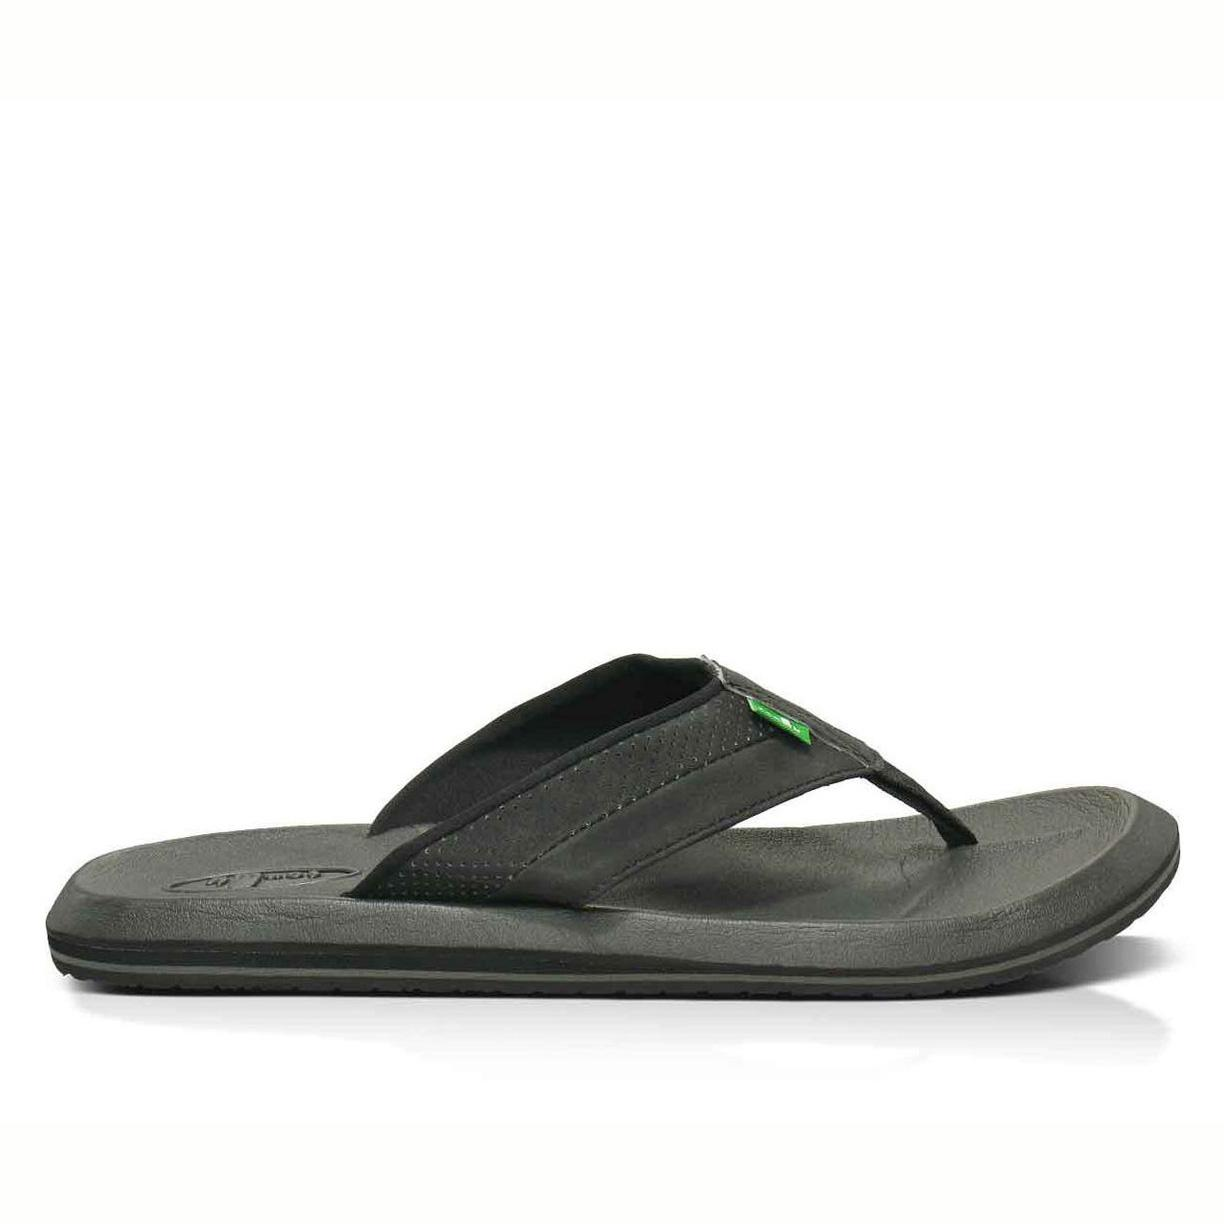 Sanuk Men's Slacker 2 Flip Flops